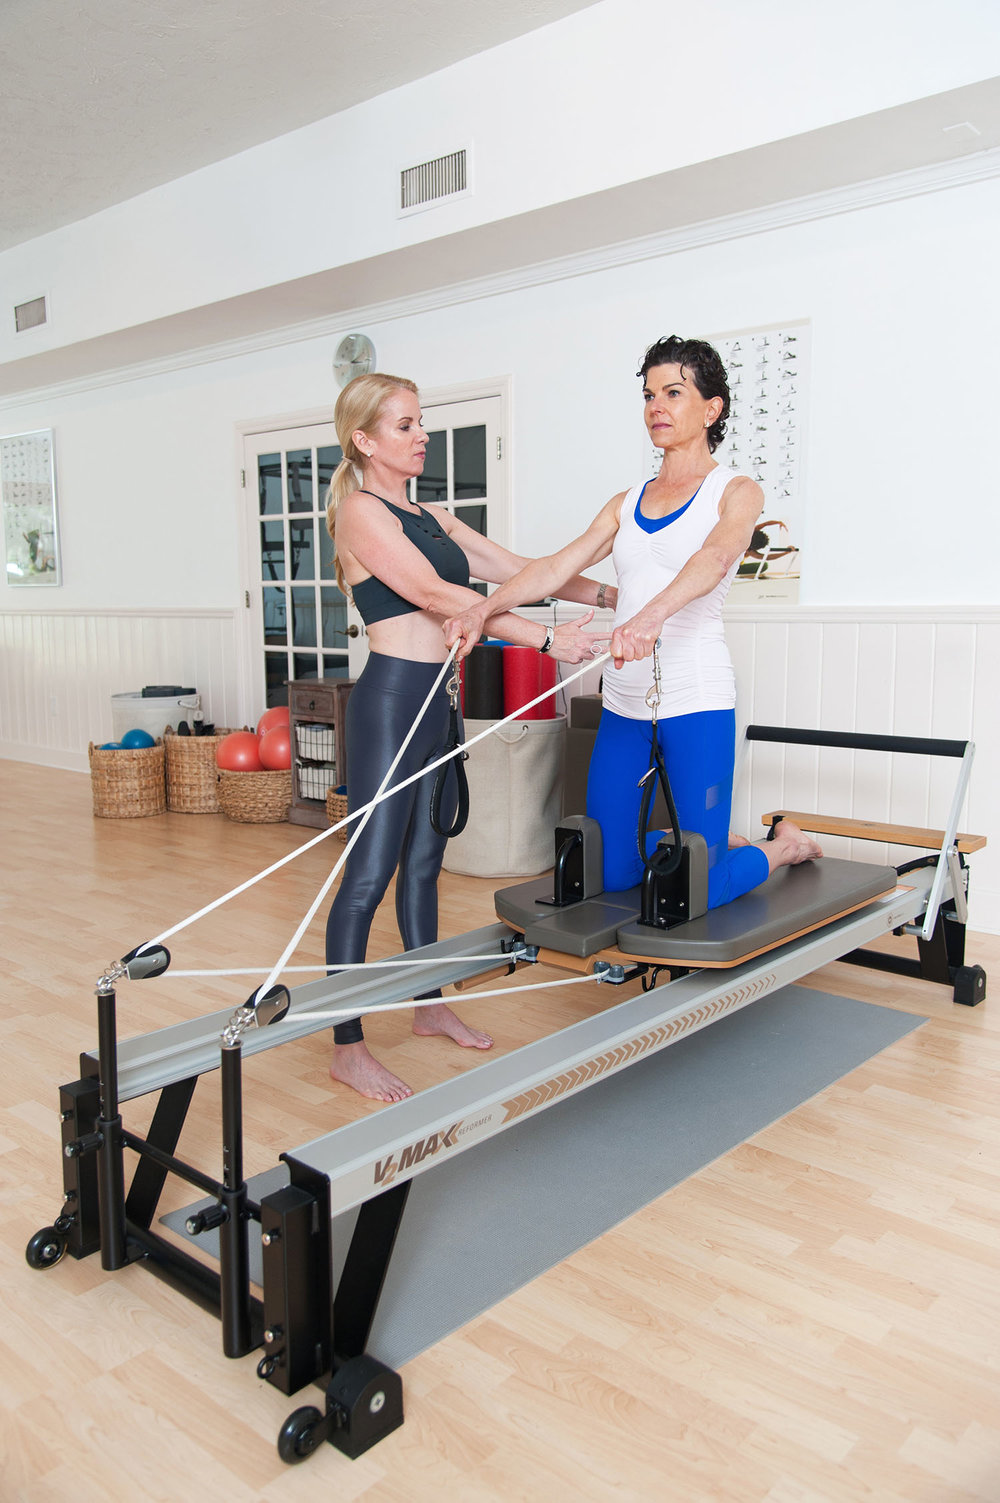 Private Pilates Sessions with Nina Desloge at her sarasota studio, Pilates Works of Sarasota.